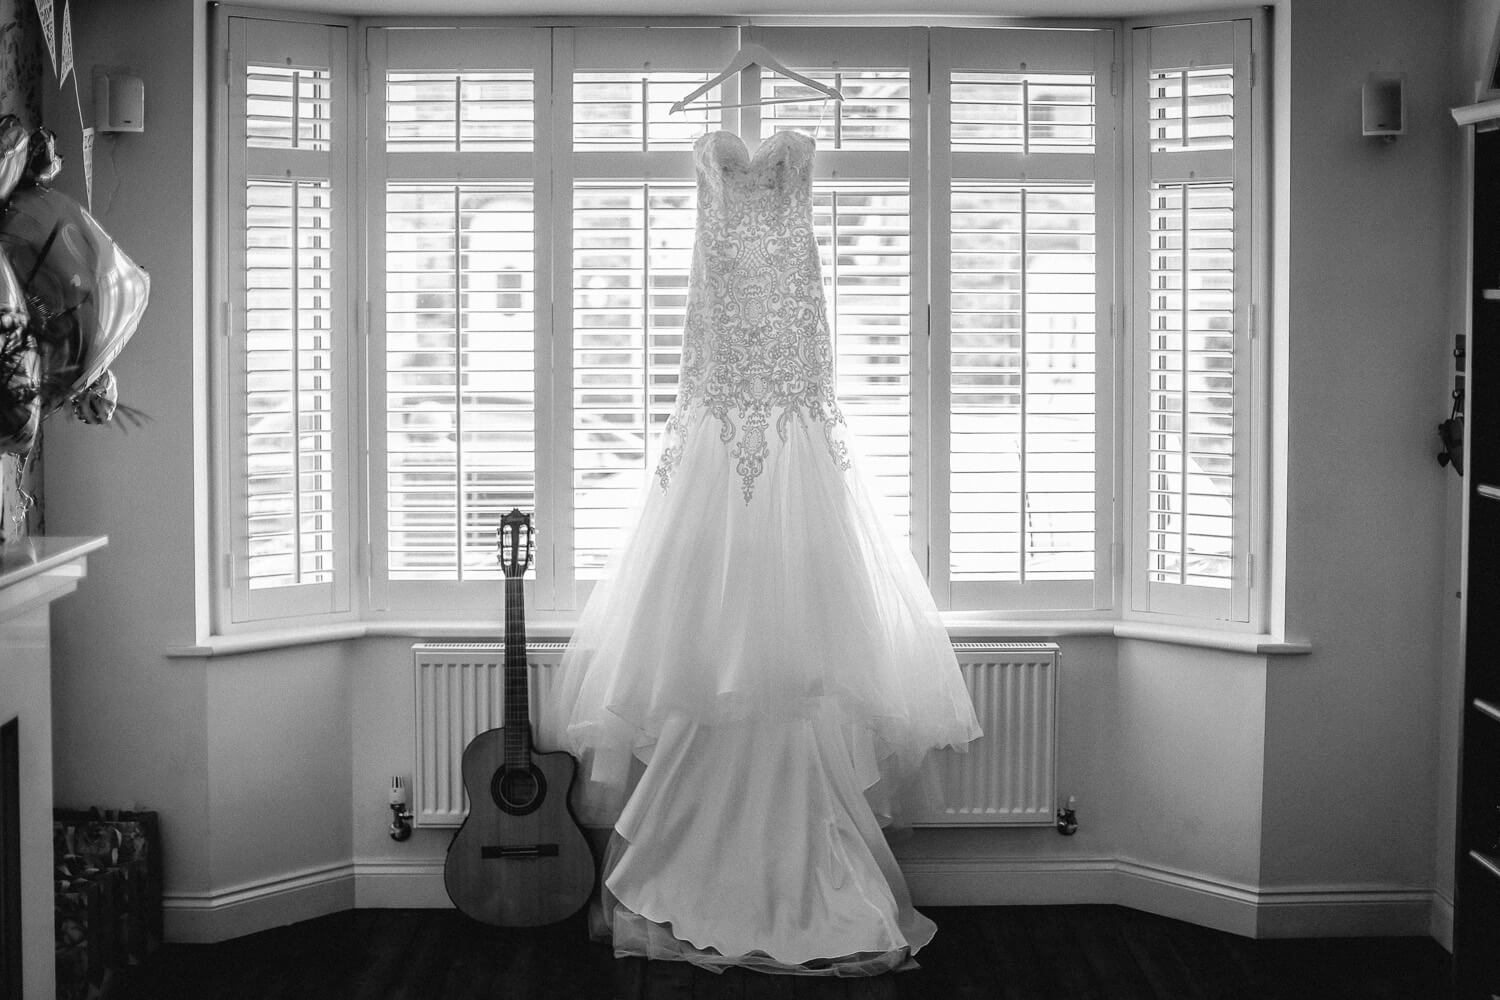 Morilee wedding dress having in window with dad's guitar 30 James Street Liverpool wedding photography